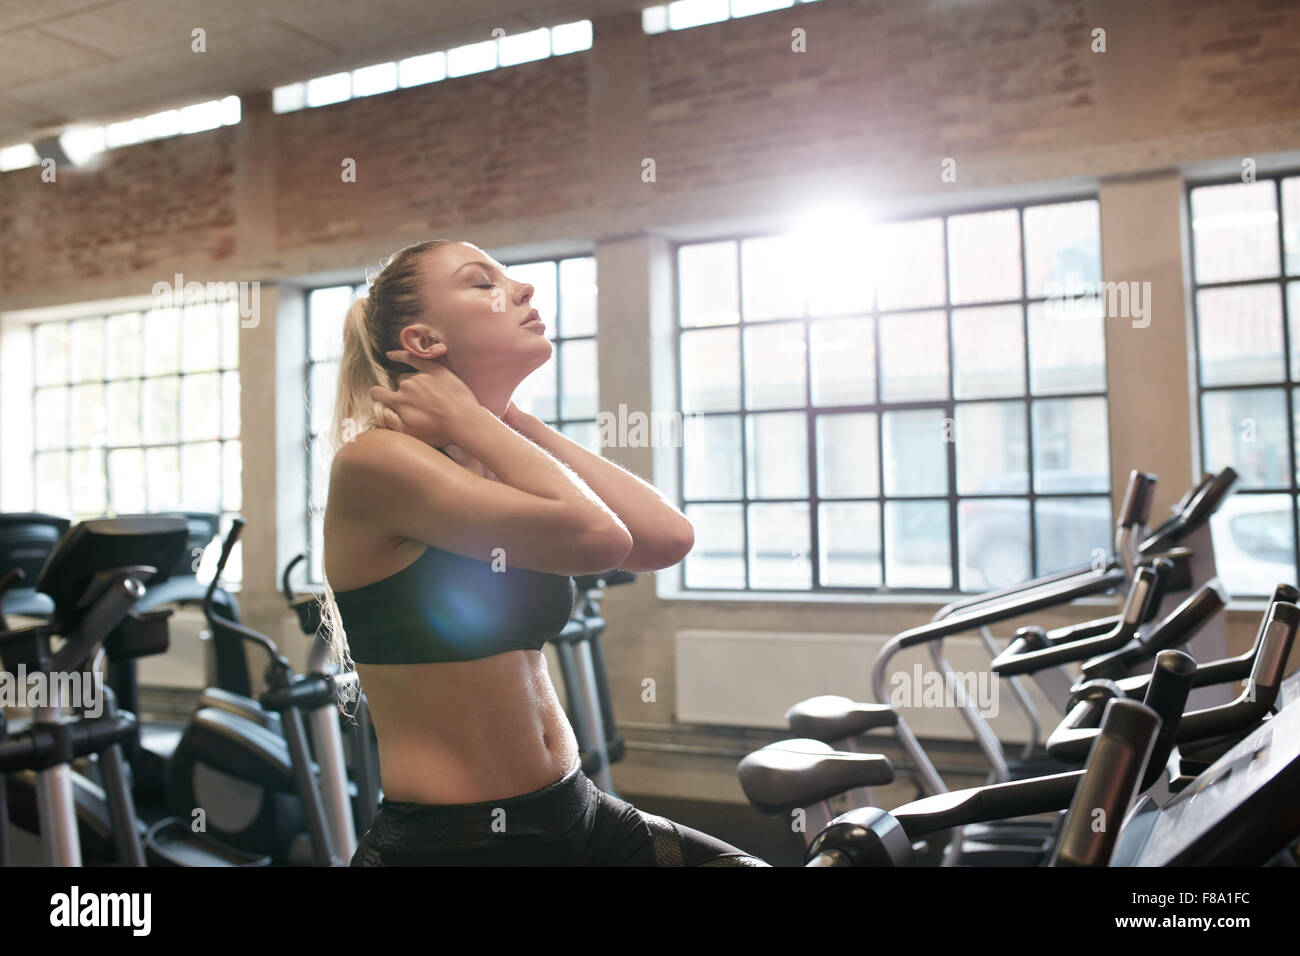 Young woman tired after intense workout on gym bike. Relaxing her neck muscles after workout in fitness club. - Stock Image